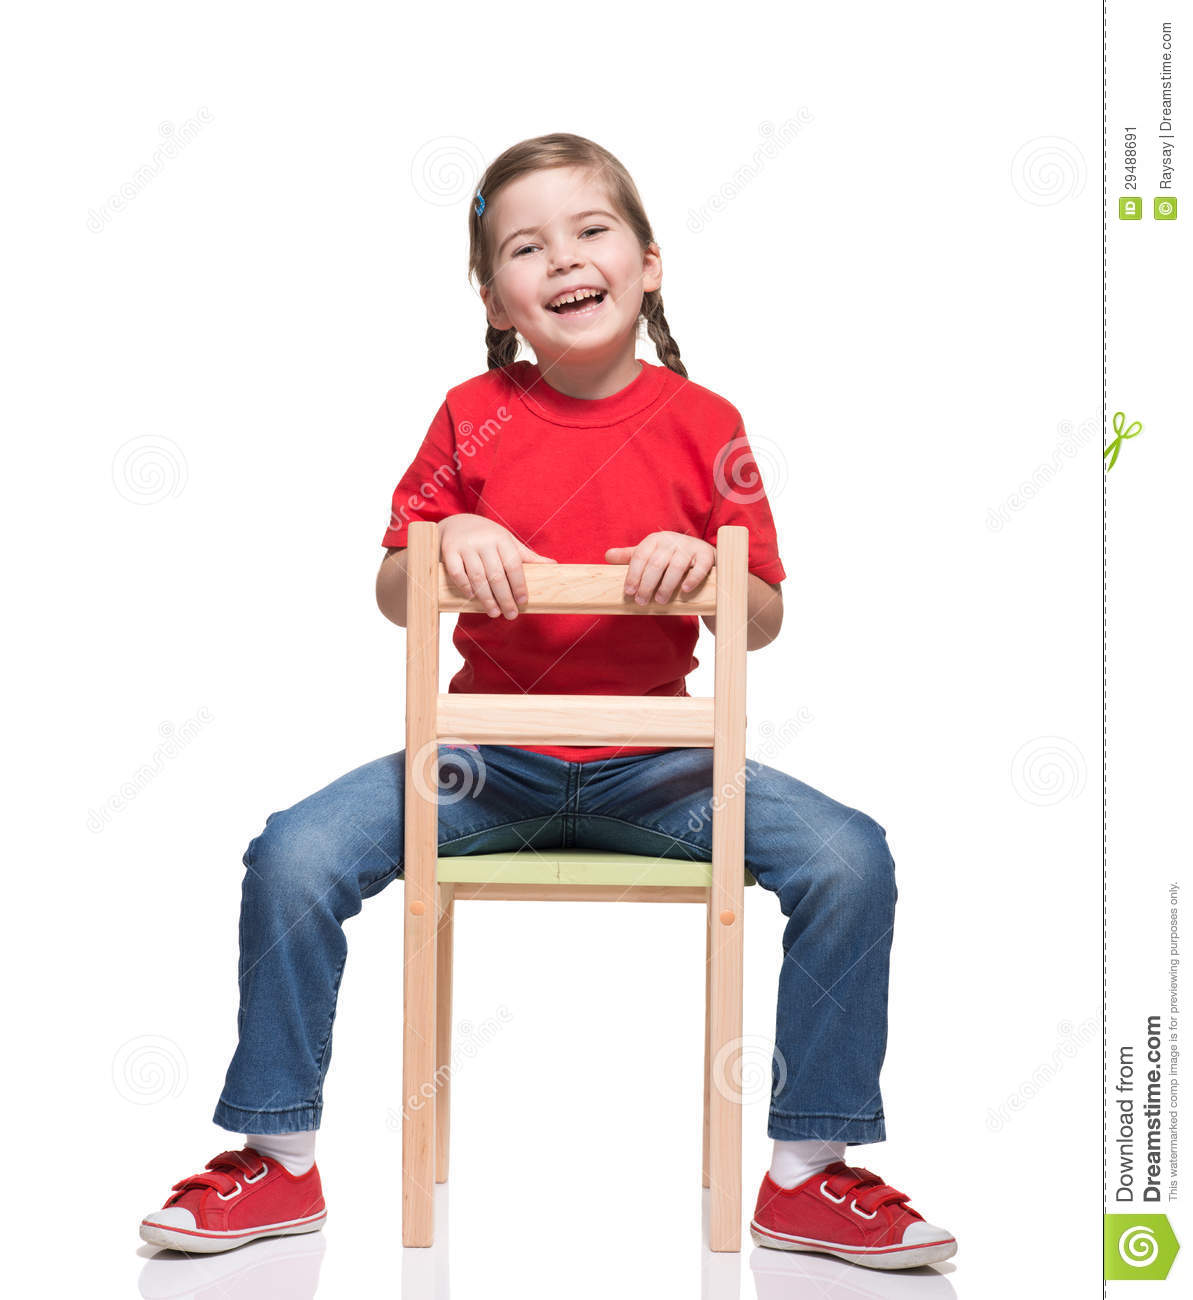 little girl chairs teal club chair wearing red t short and posing on stock